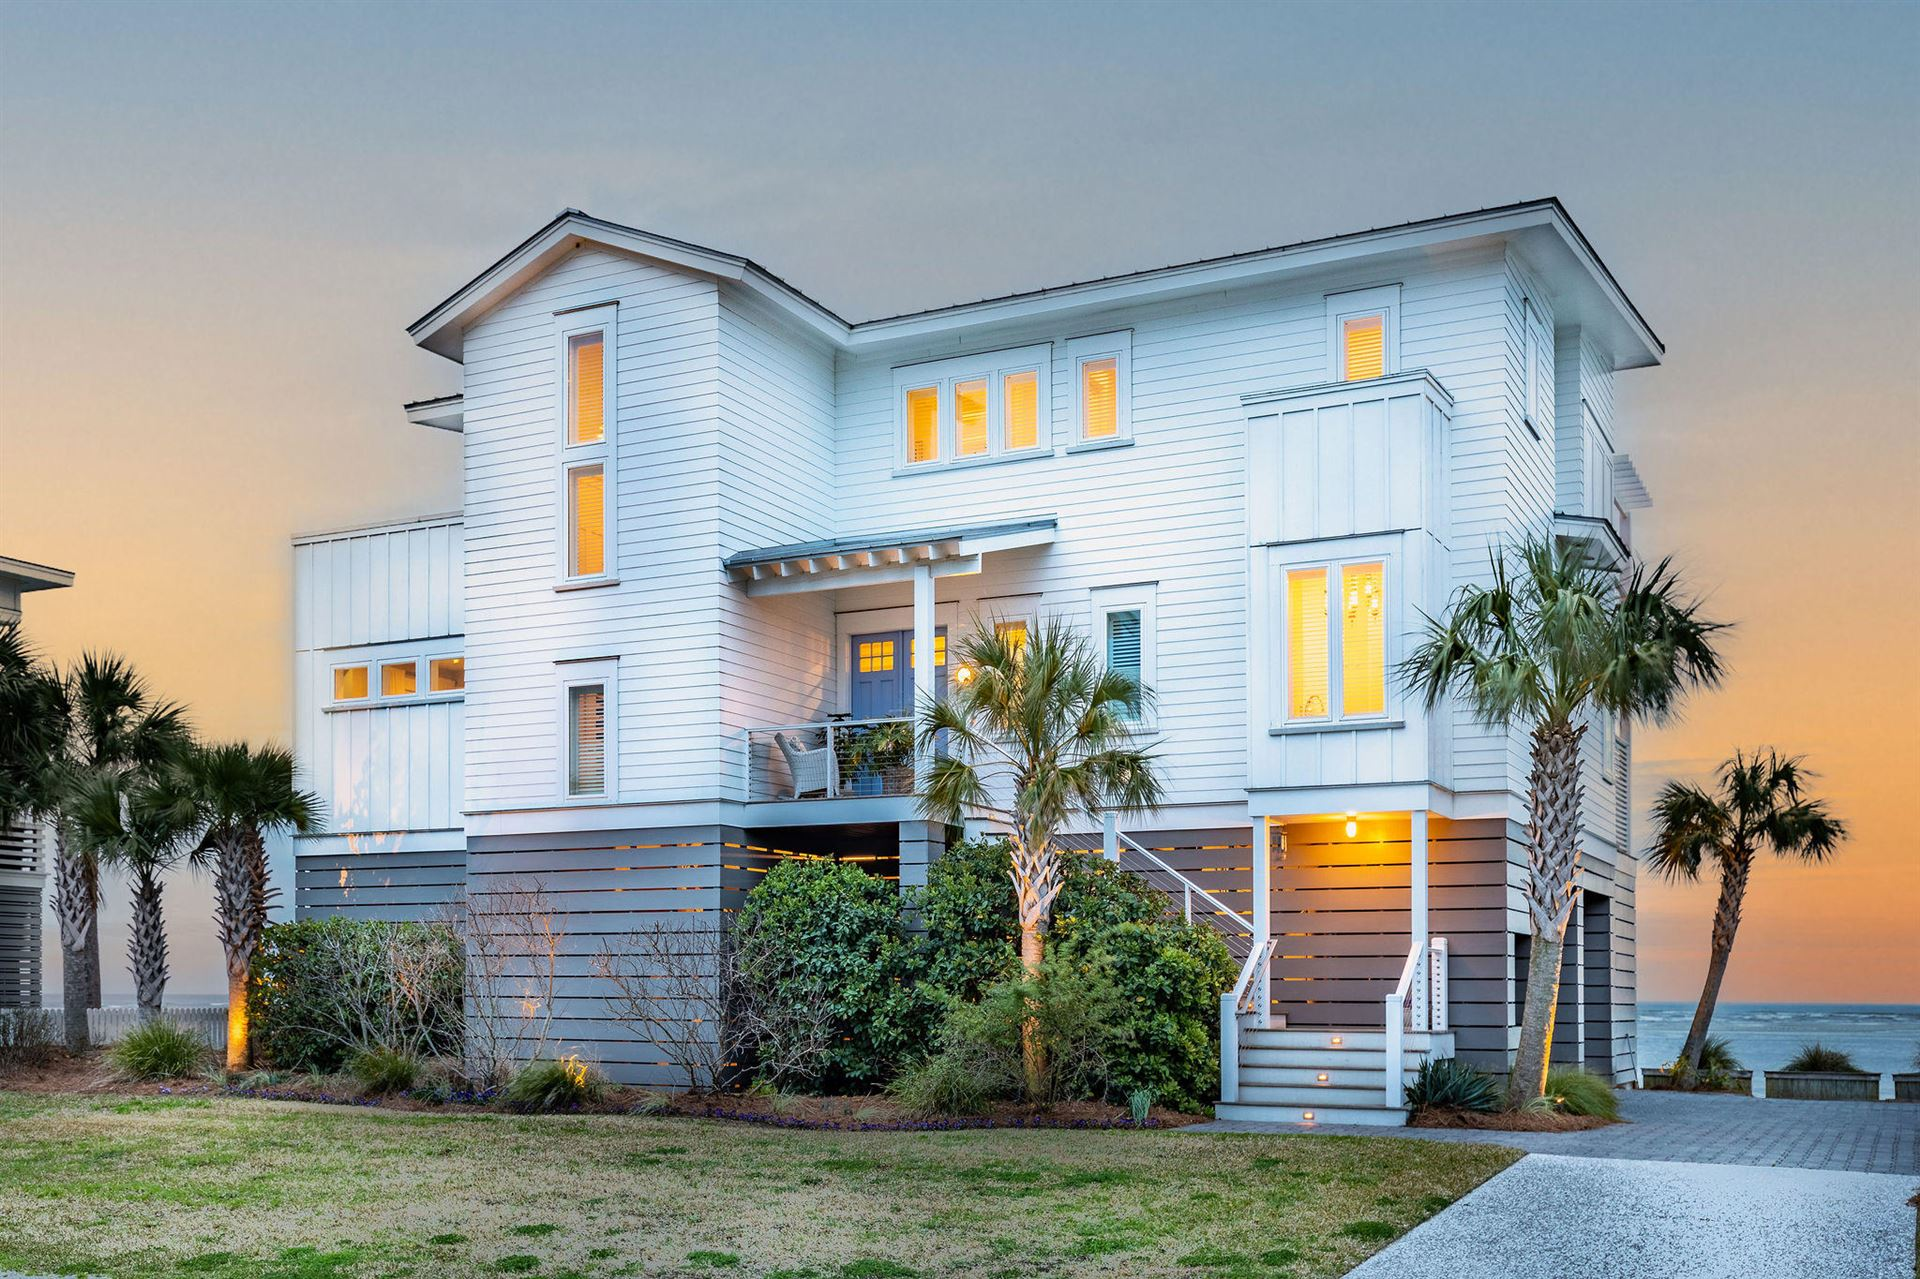 Photo of 3013 Marshall Boulevard, Sullivans Island, SC 29482 (MLS # 21010234)